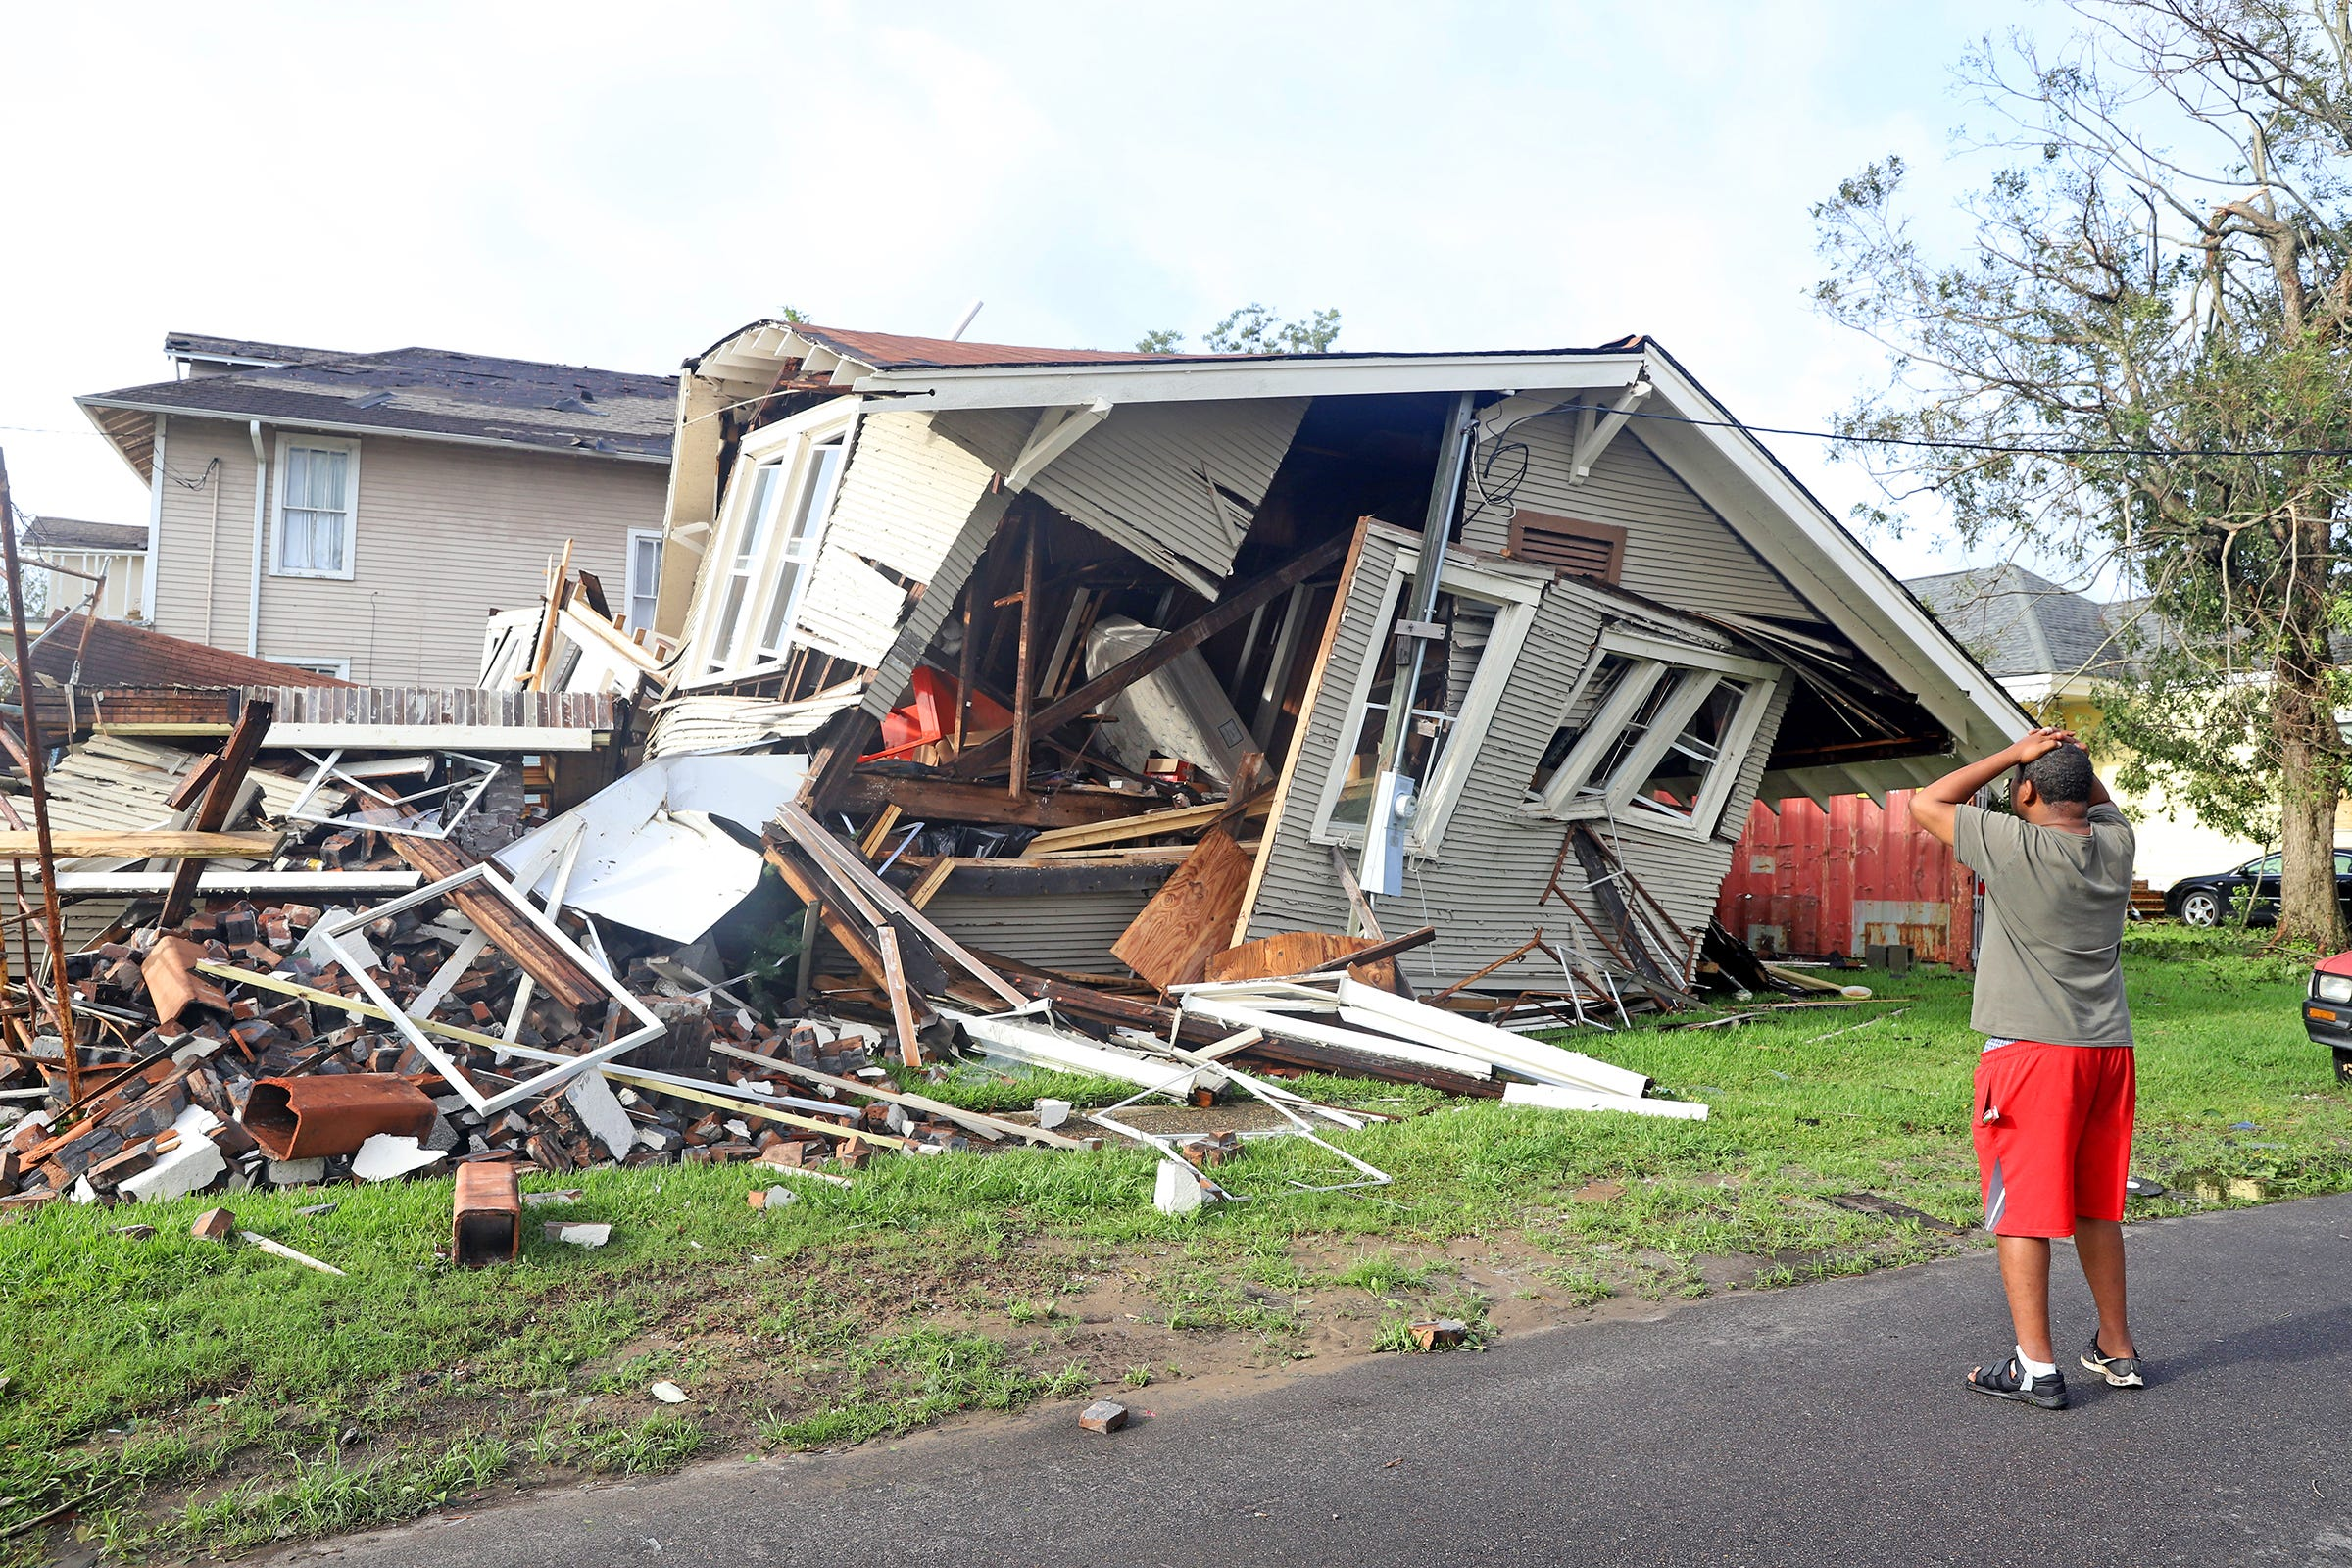 Dartanian Stovall looks at the house that collapsed with him inside during the height of Hurricane Ida in New Orleans.